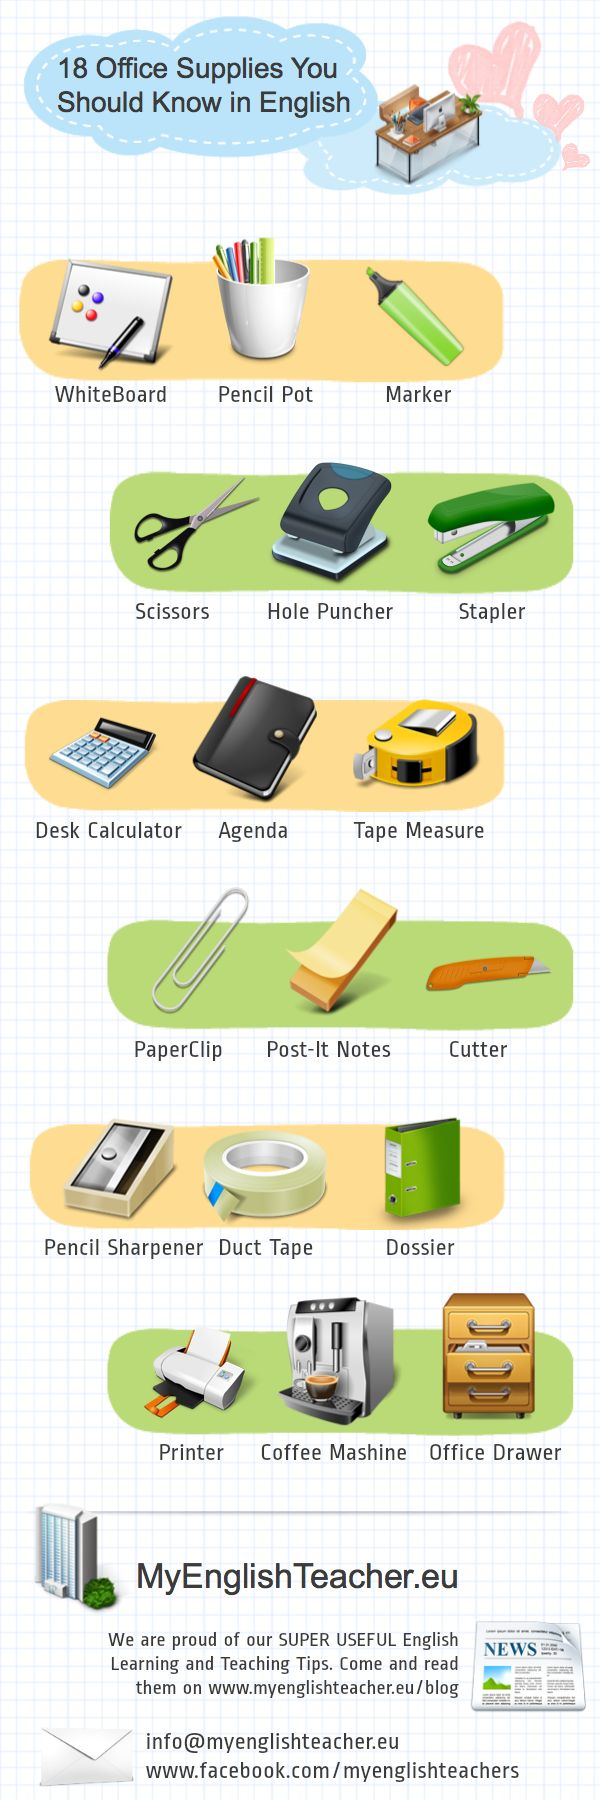 18 office supplies in english - vocabulary